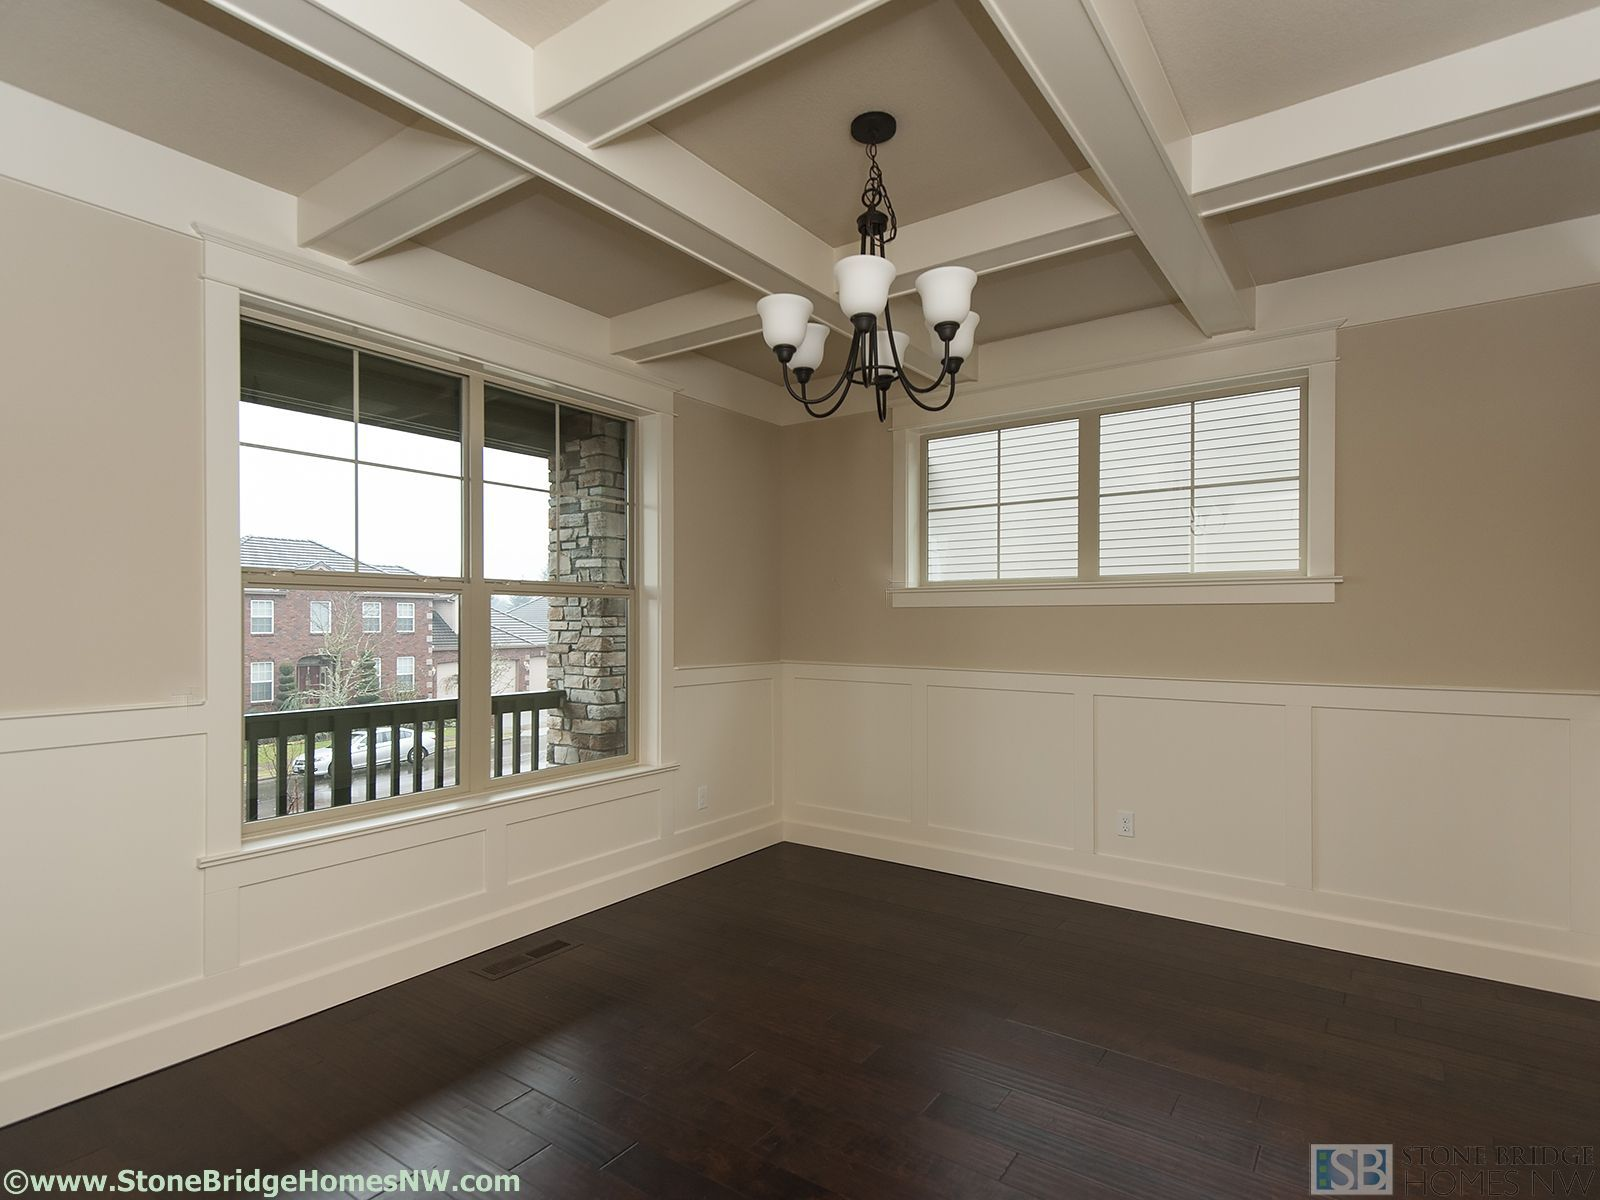 Dining room with wainscoting/wall paneling and coffered